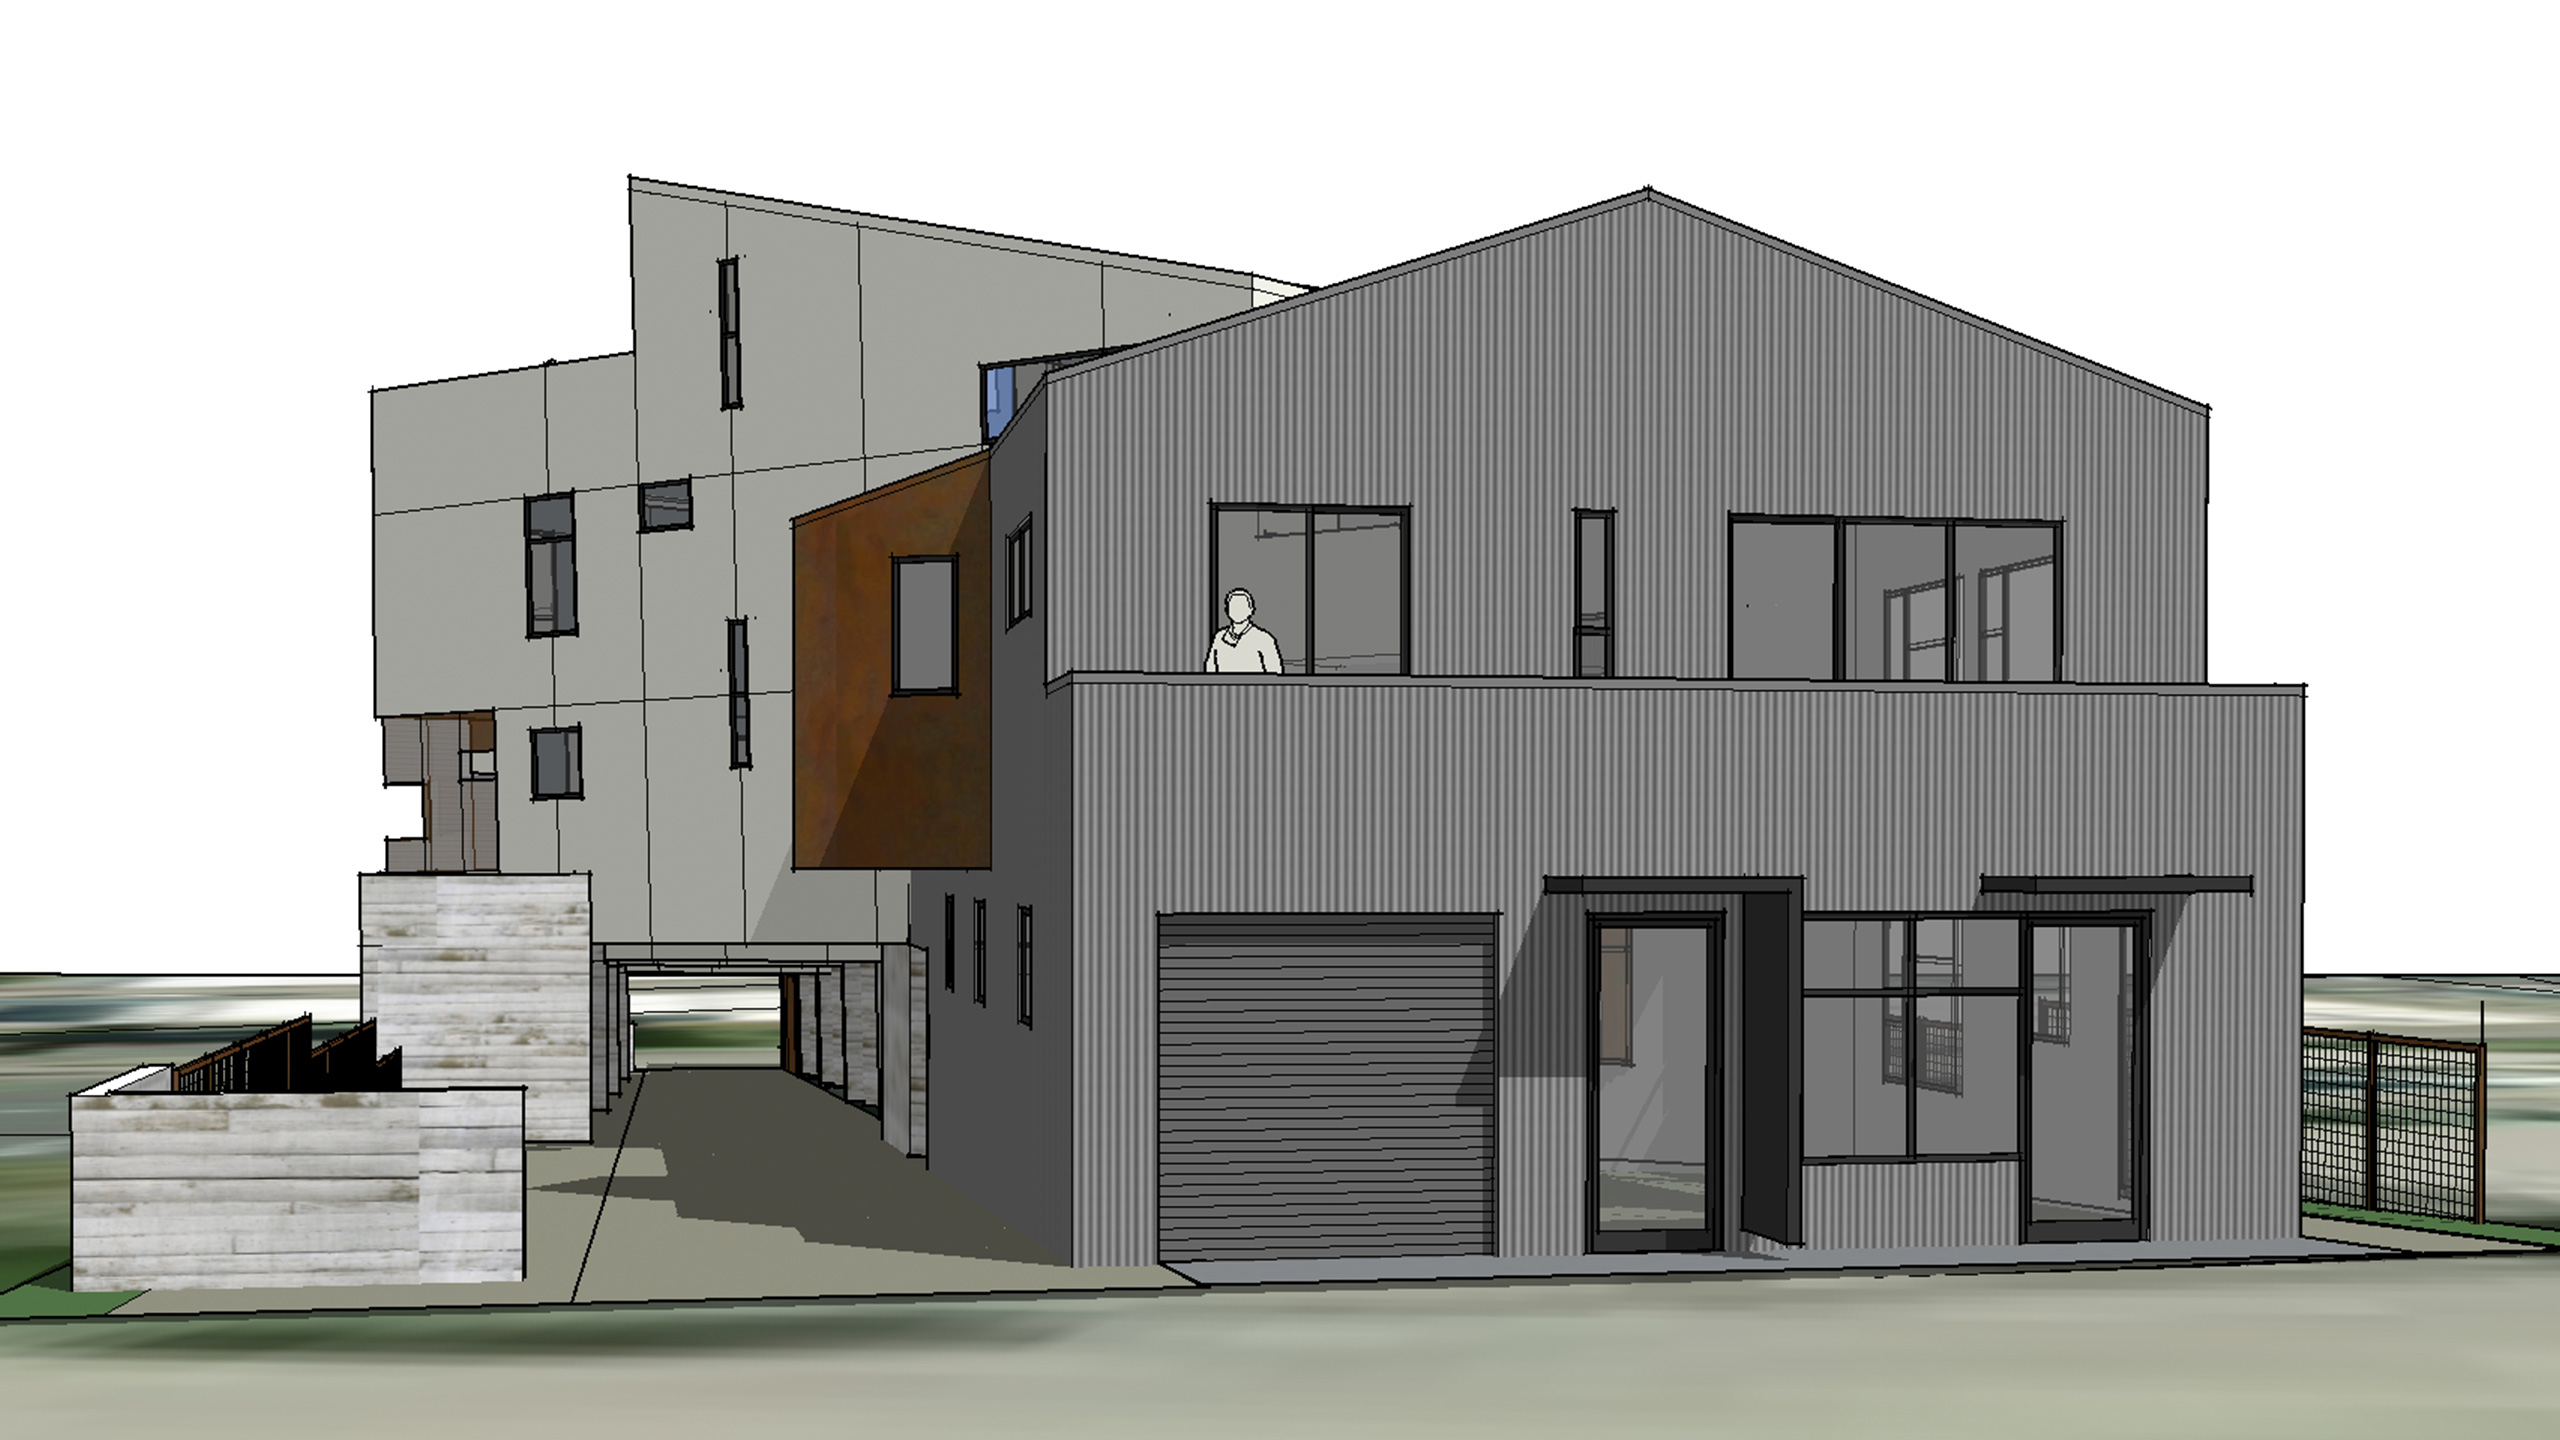 Net-Zero-Multifamily-Sonoma-County-Liberty-Lofts-modern-house-with-corrugated-metal-facade